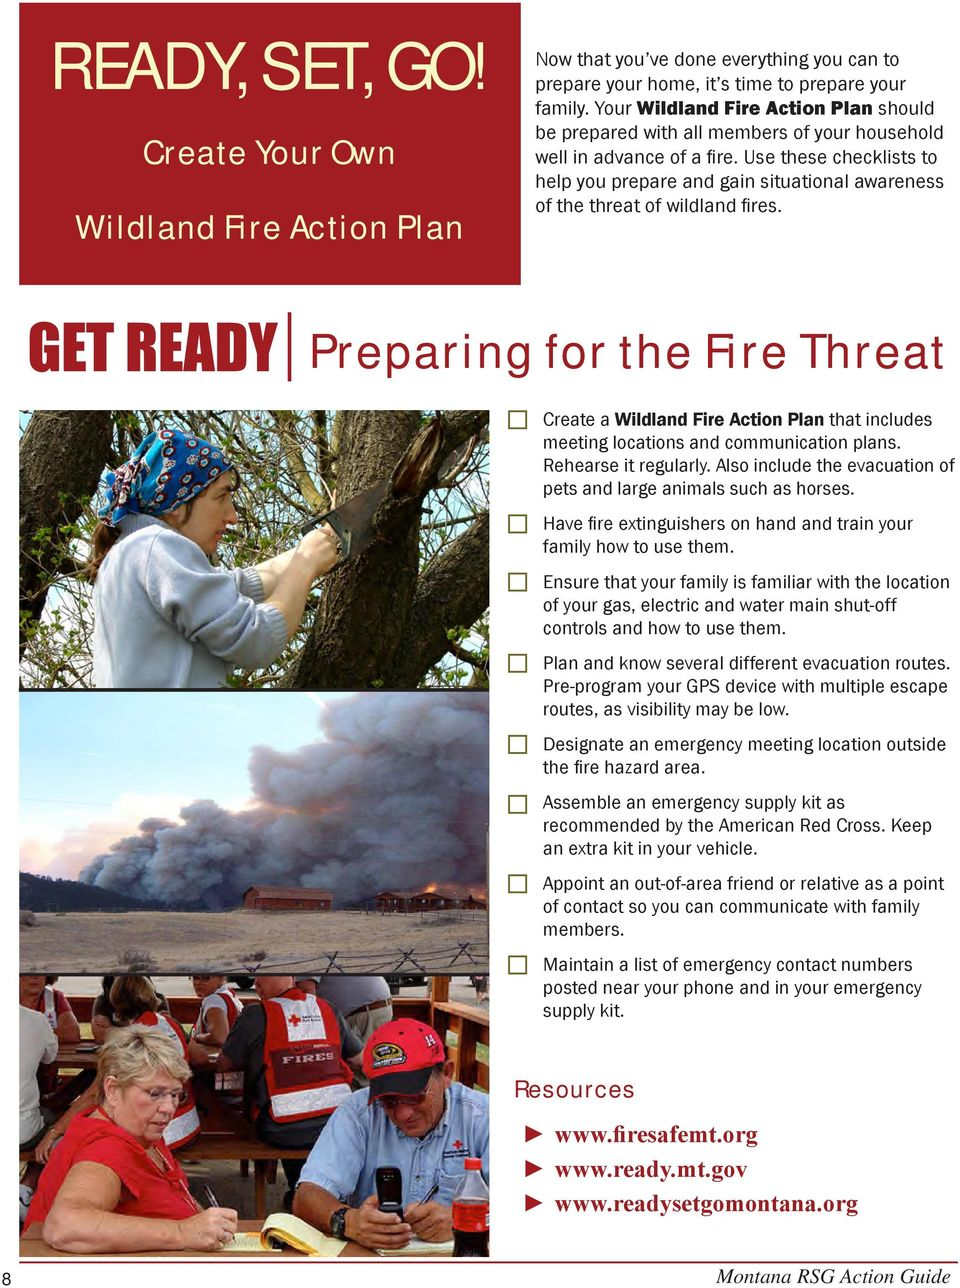 Use these checklists to help you prepare and gain situational awareness of the threat of wildland fires.